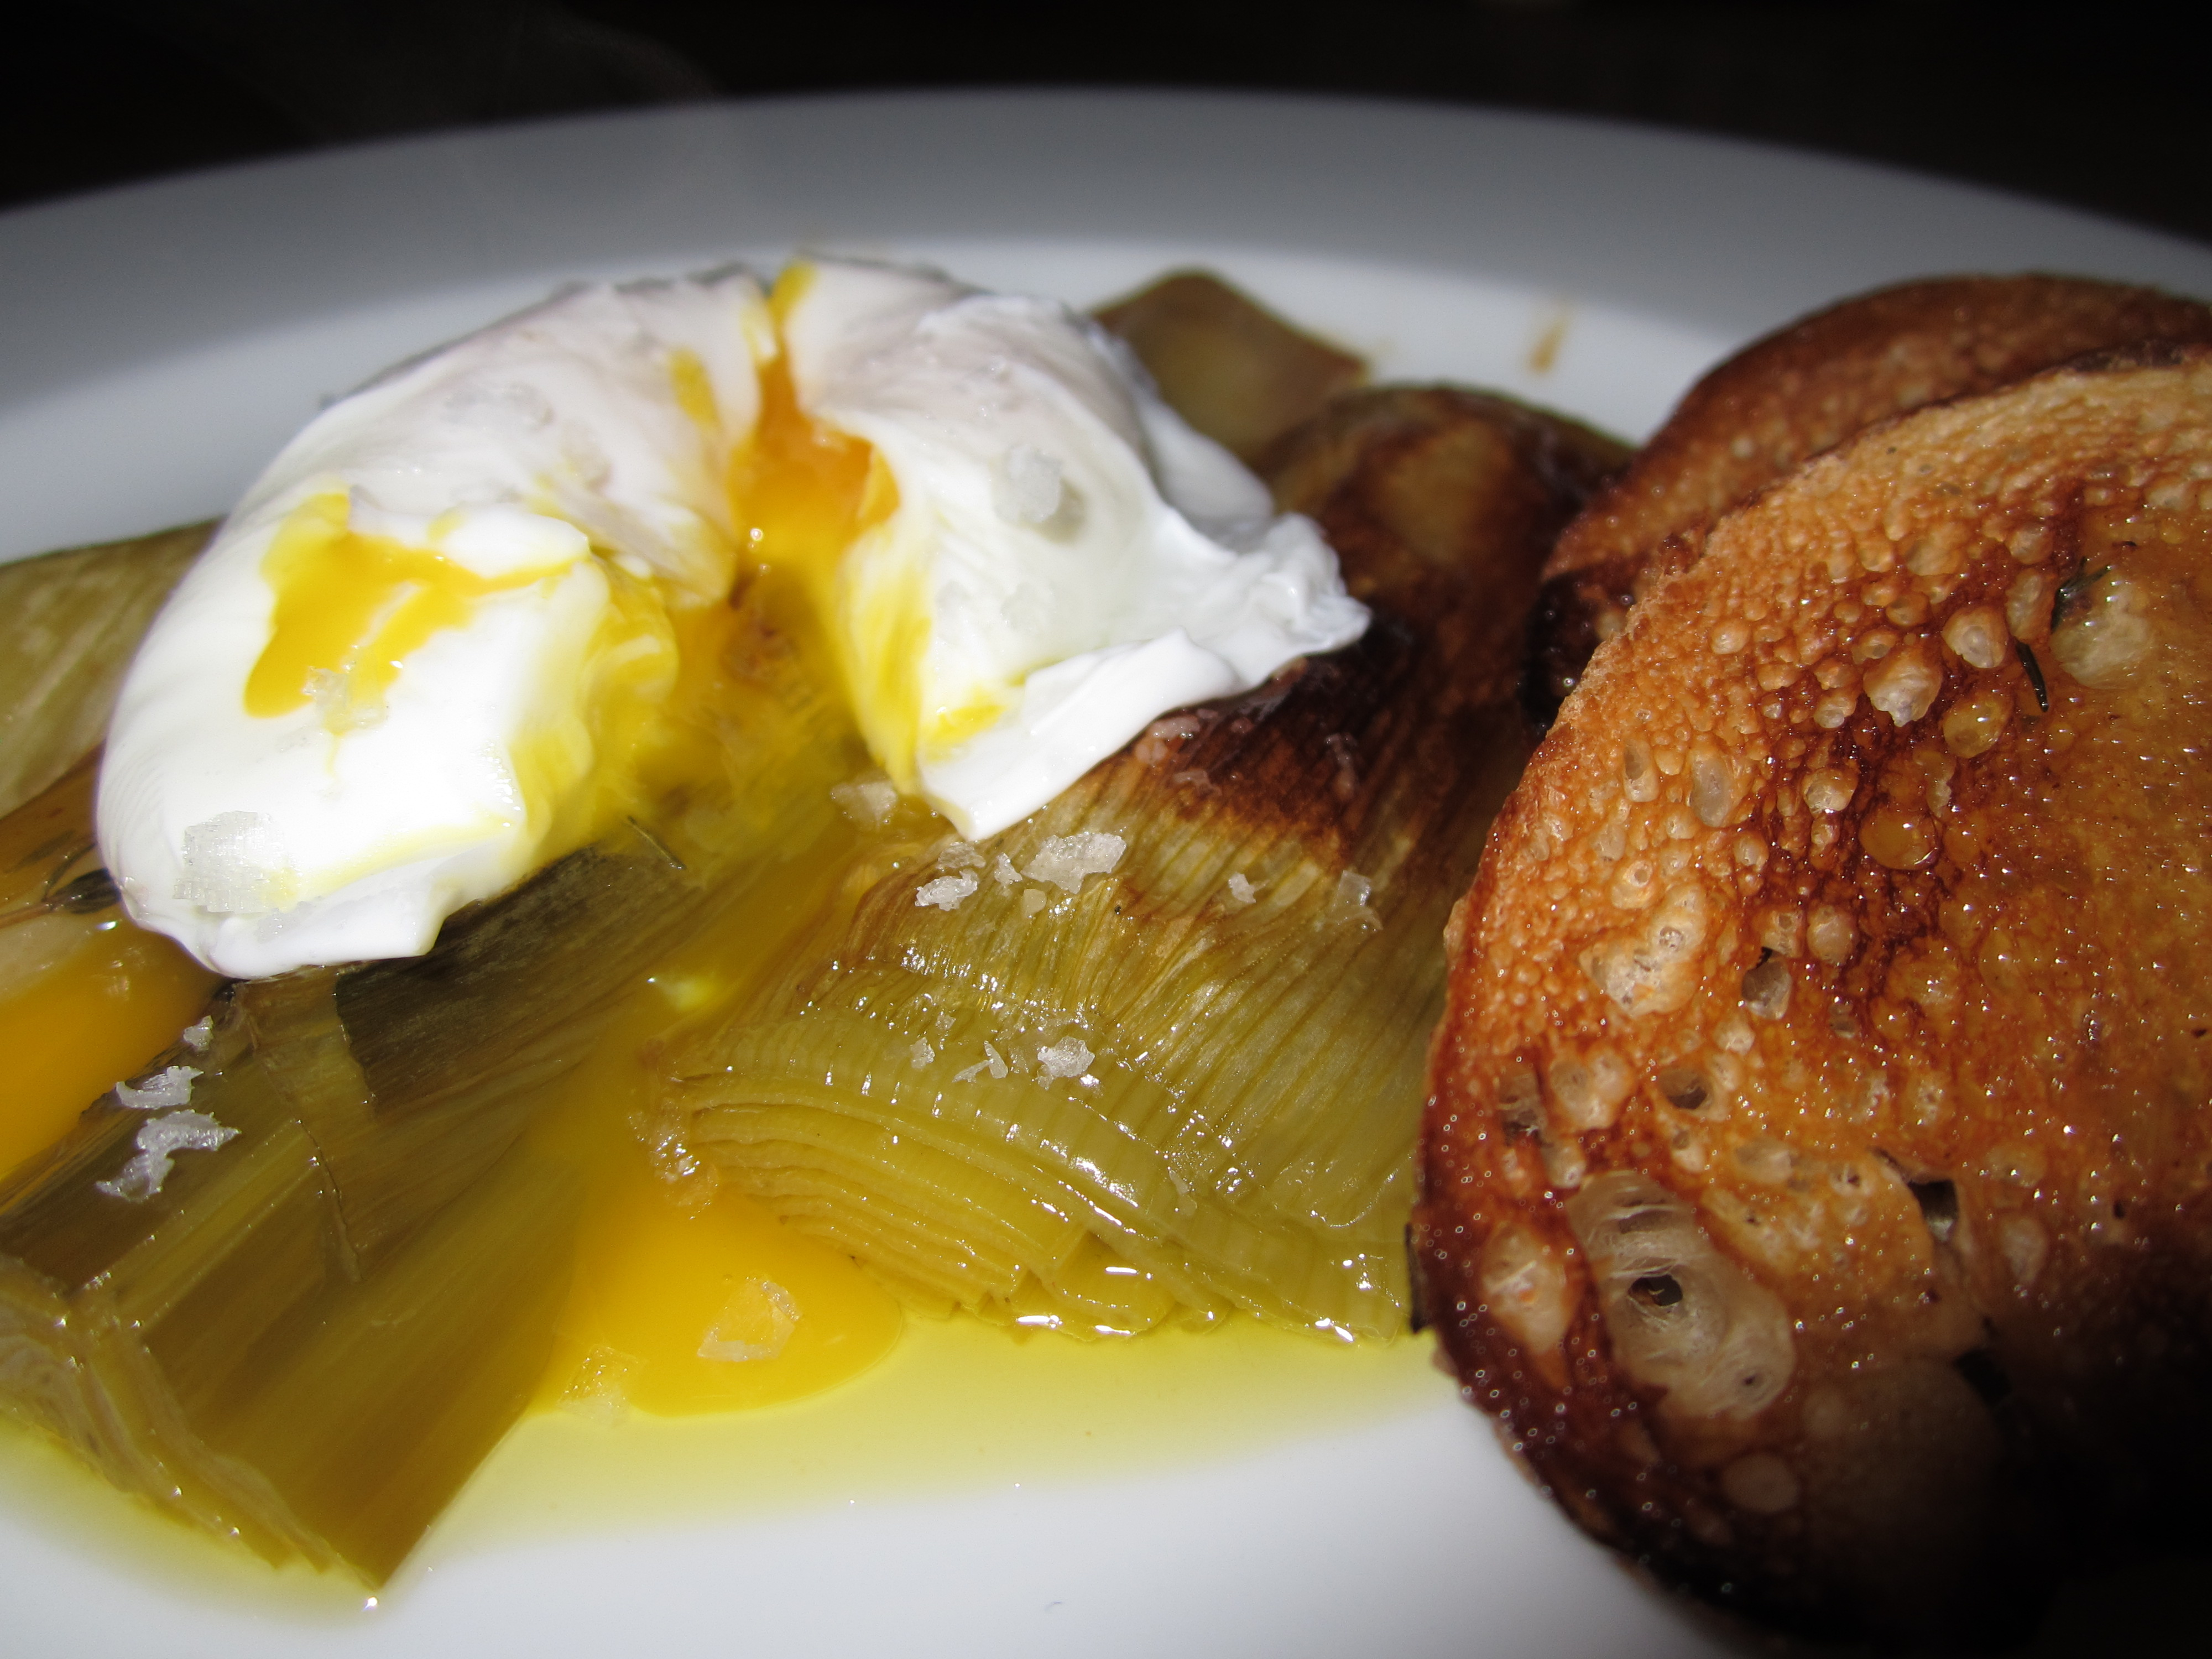 Braised Leeks with Poached Eggs | No Whisk, No Reward